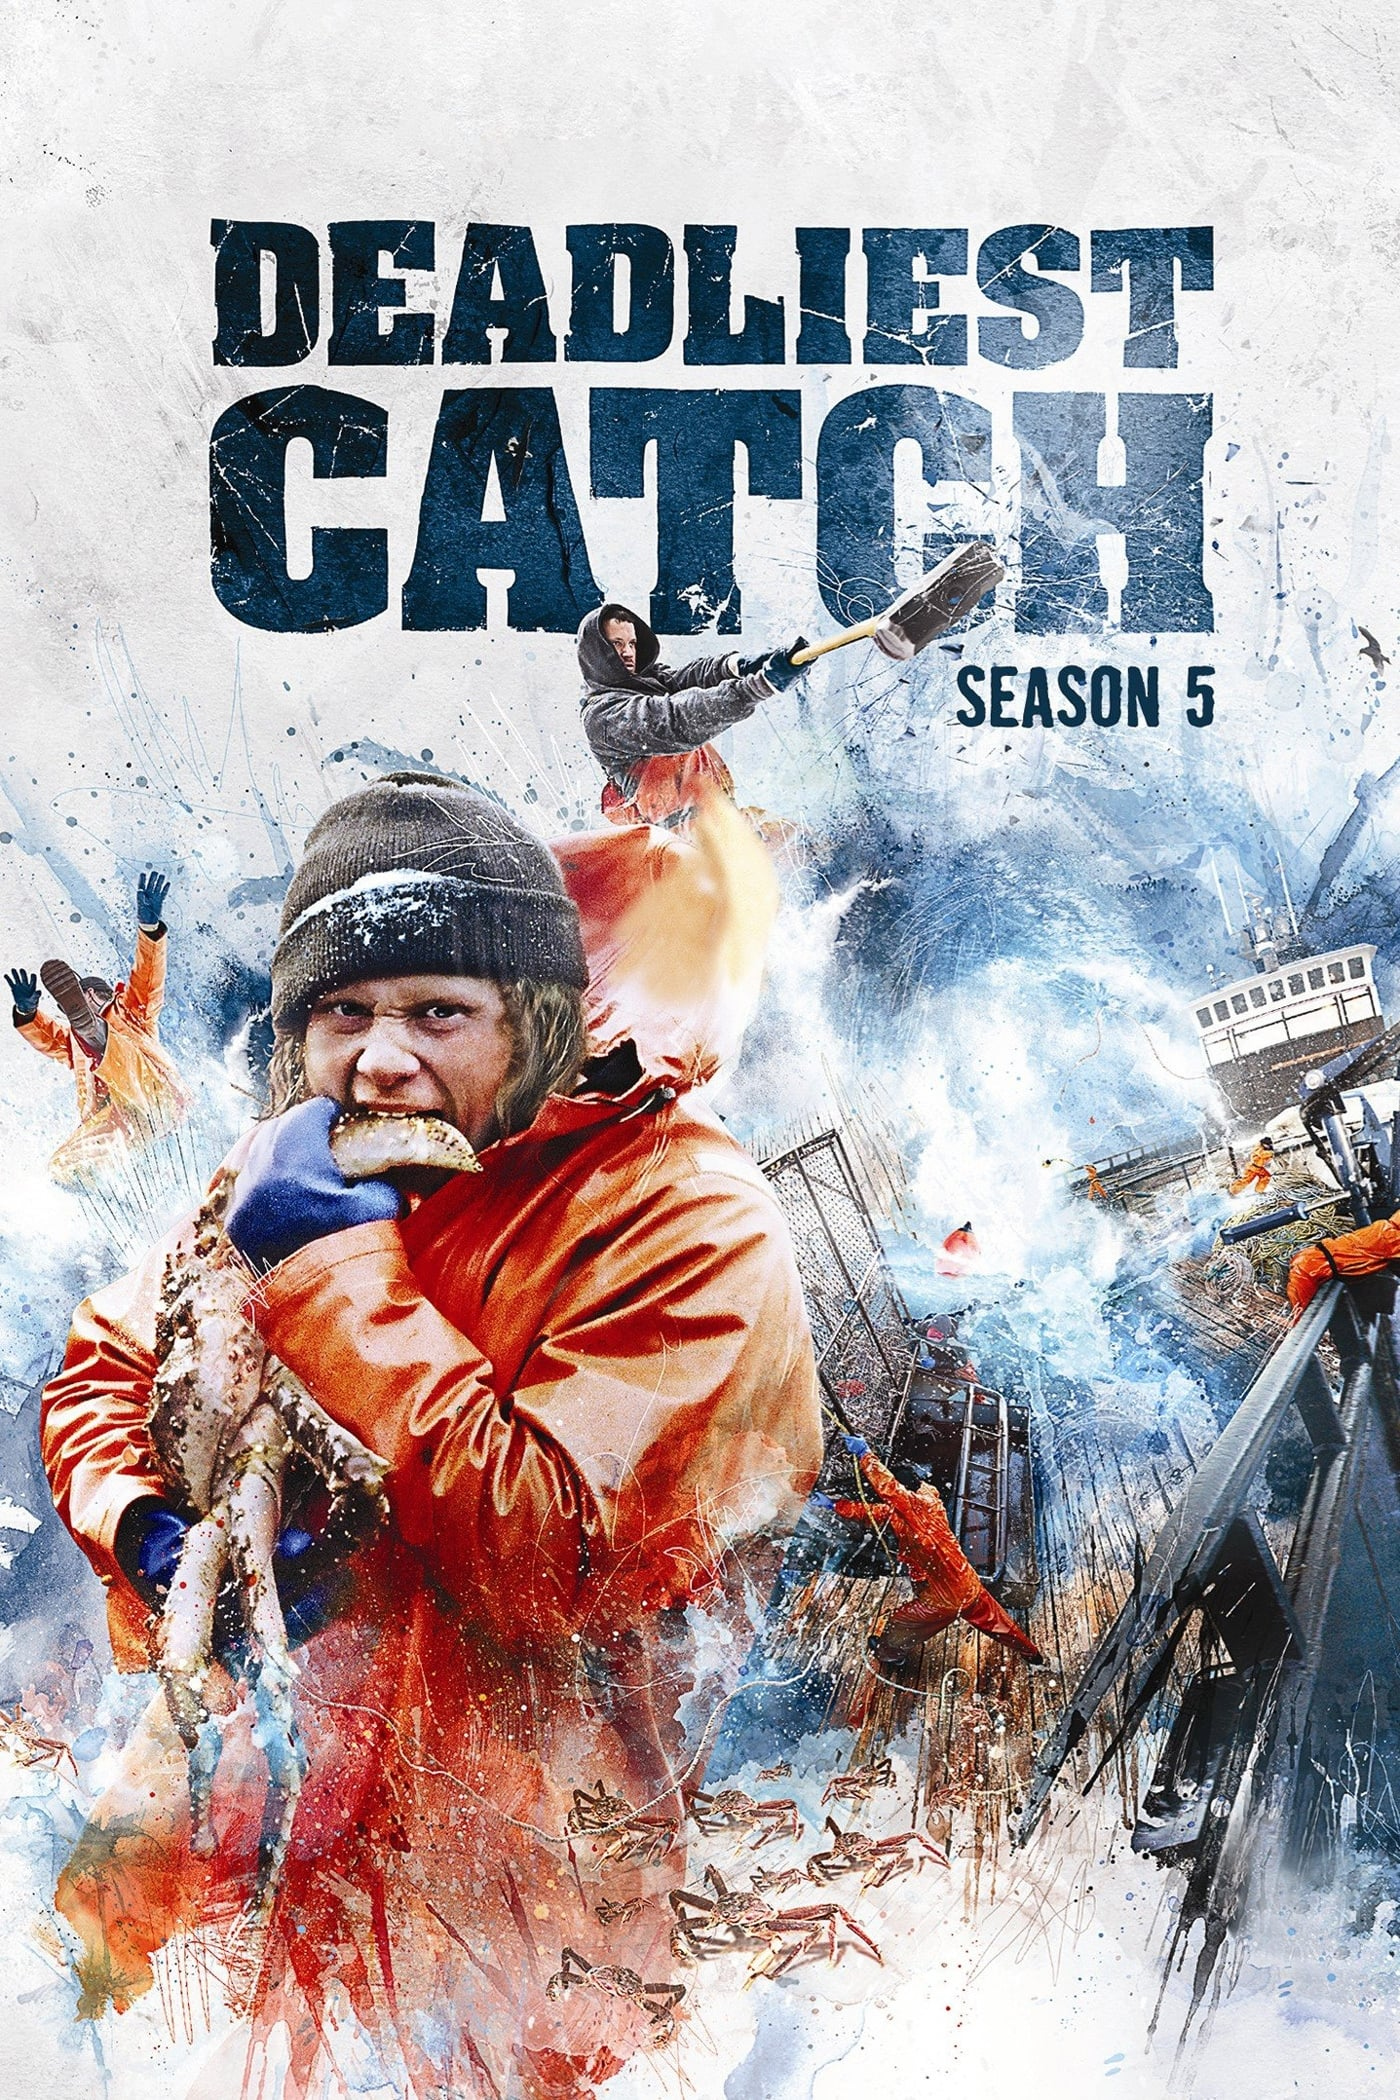 Deadliest Catch Season 5